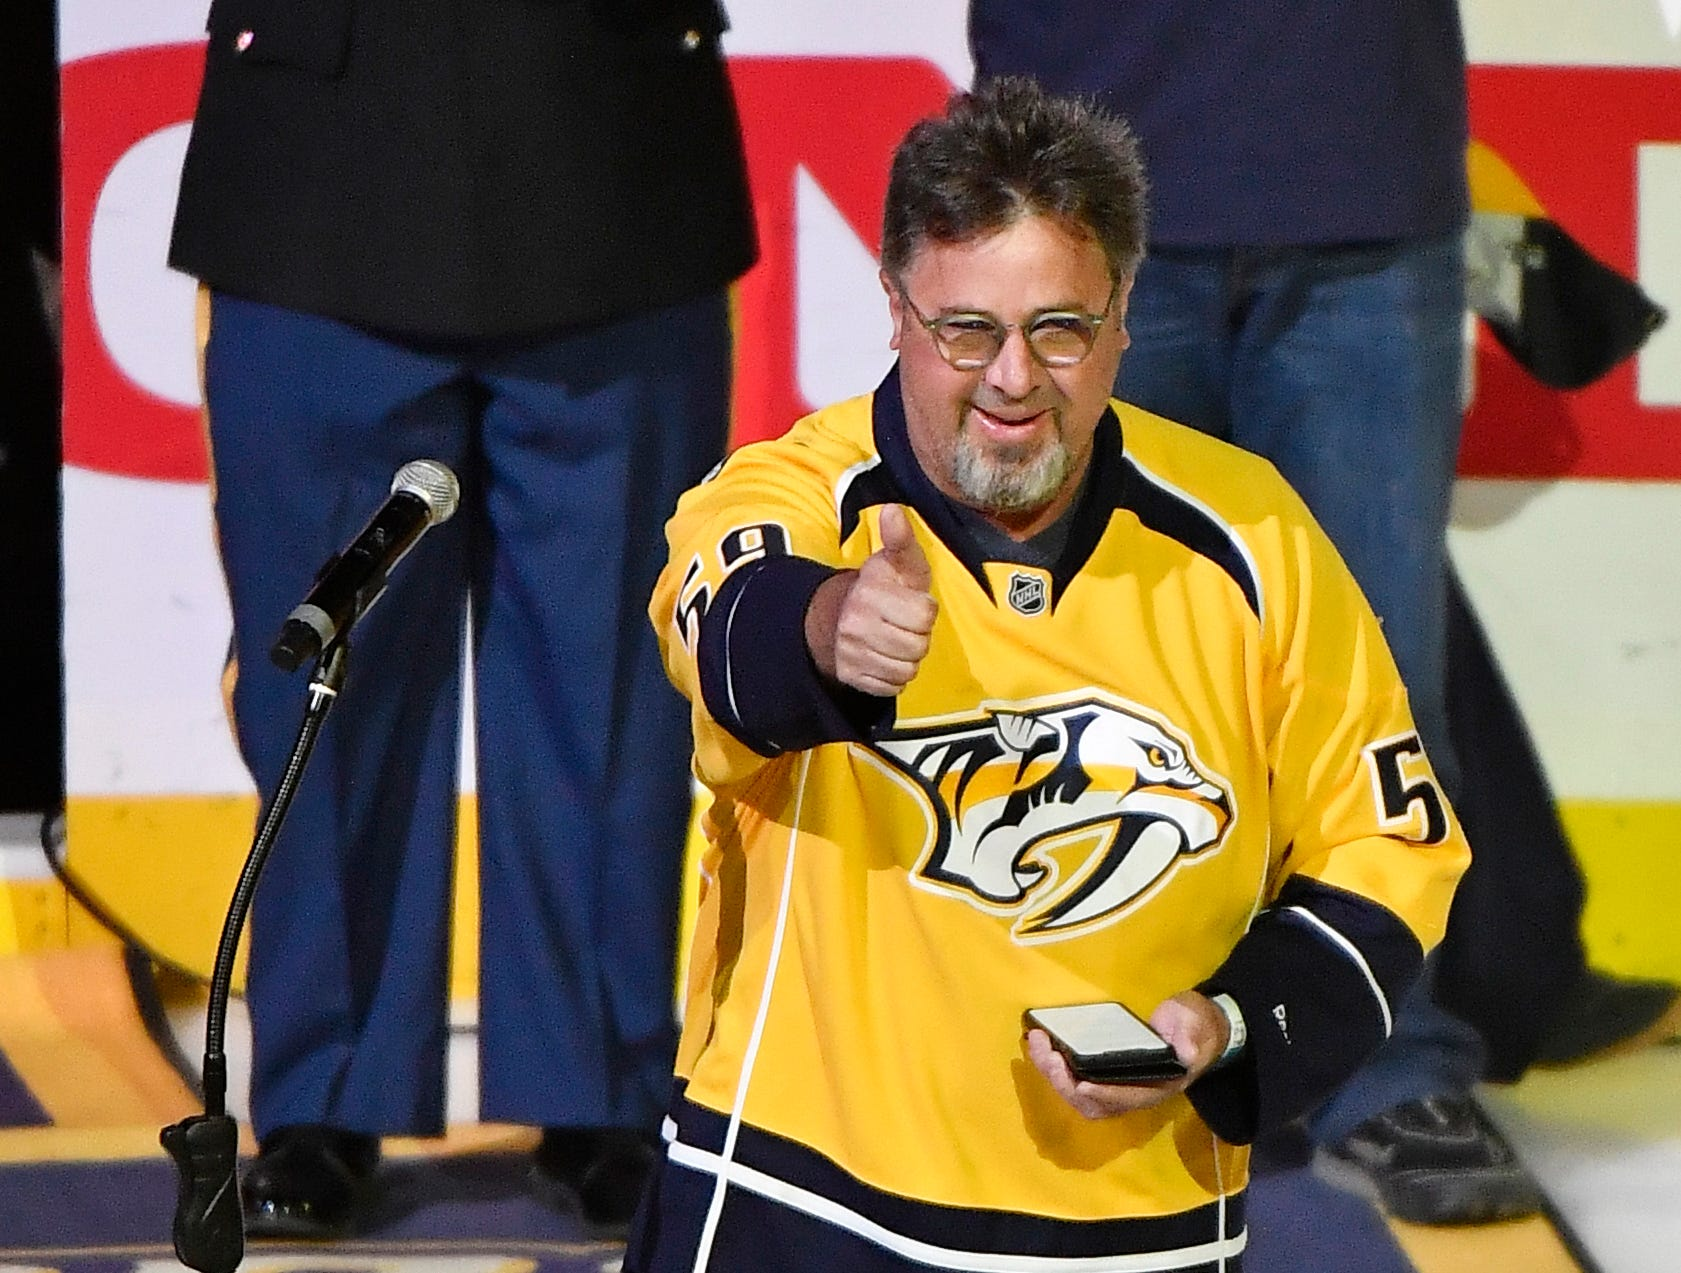 Vince Gill gestures after singing the national anthem before the Predators' divisional semifinal game against the Stars at Bridgestone Arena in Nashville, Tenn., Saturday, April 13, 2019.